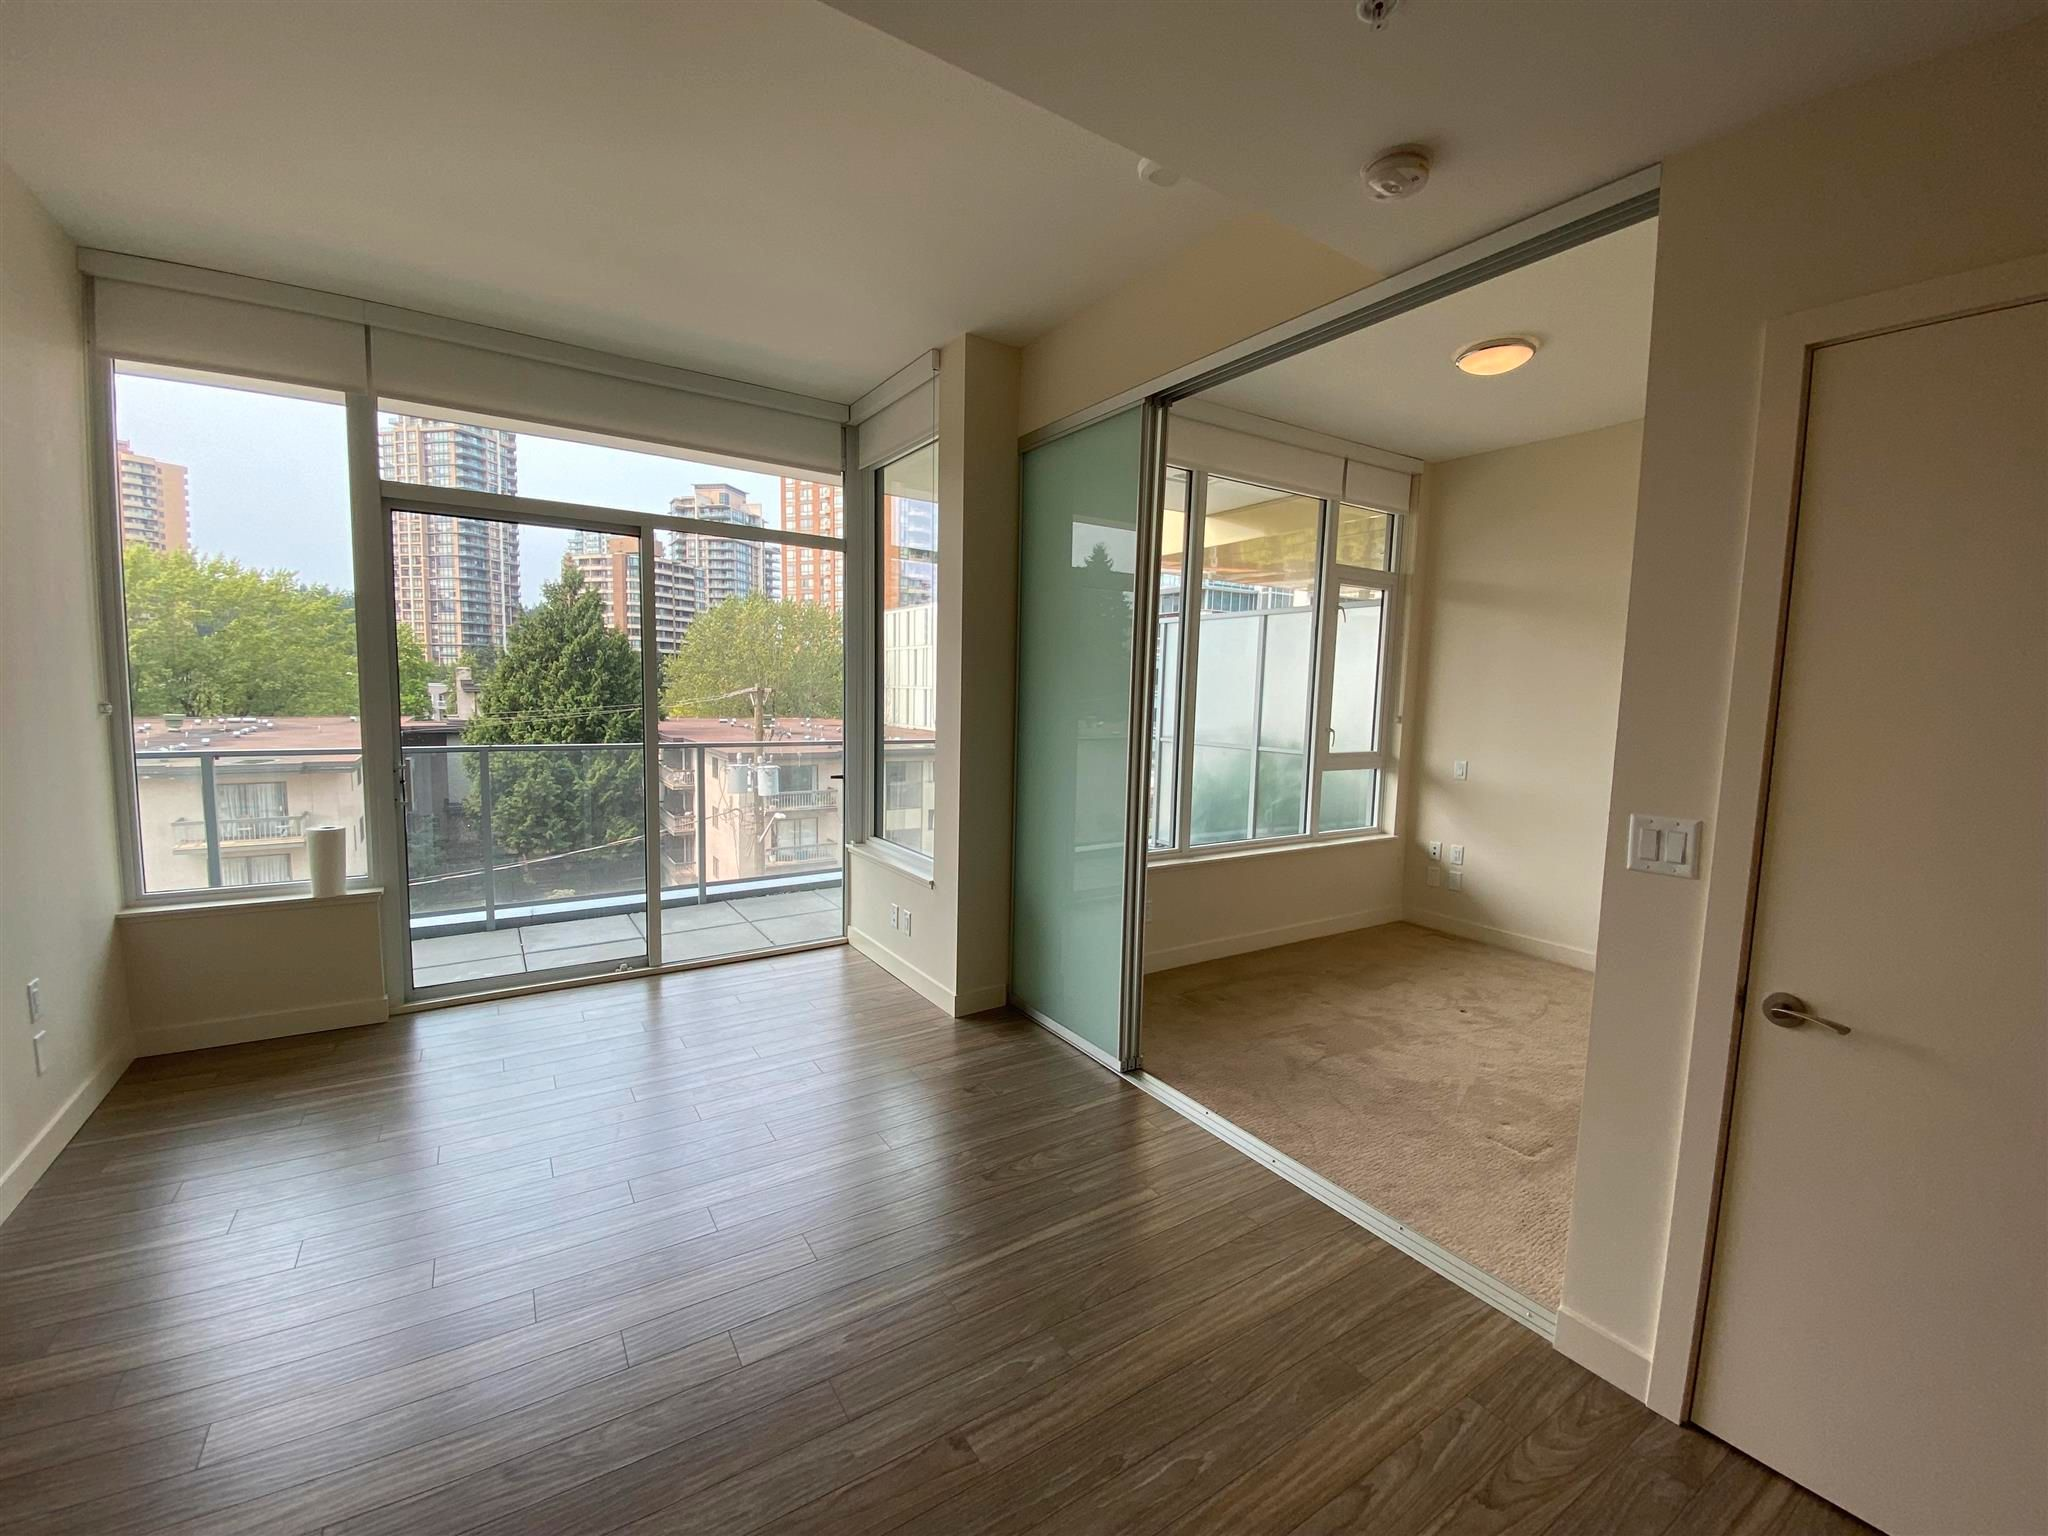 """Photo 11: Photos: 308 6288 CASSIE Avenue in Burnaby: Metrotown Condo for sale in """"GOLD HOUSE SOUTH TOWER"""" (Burnaby South)  : MLS®# R2606367"""